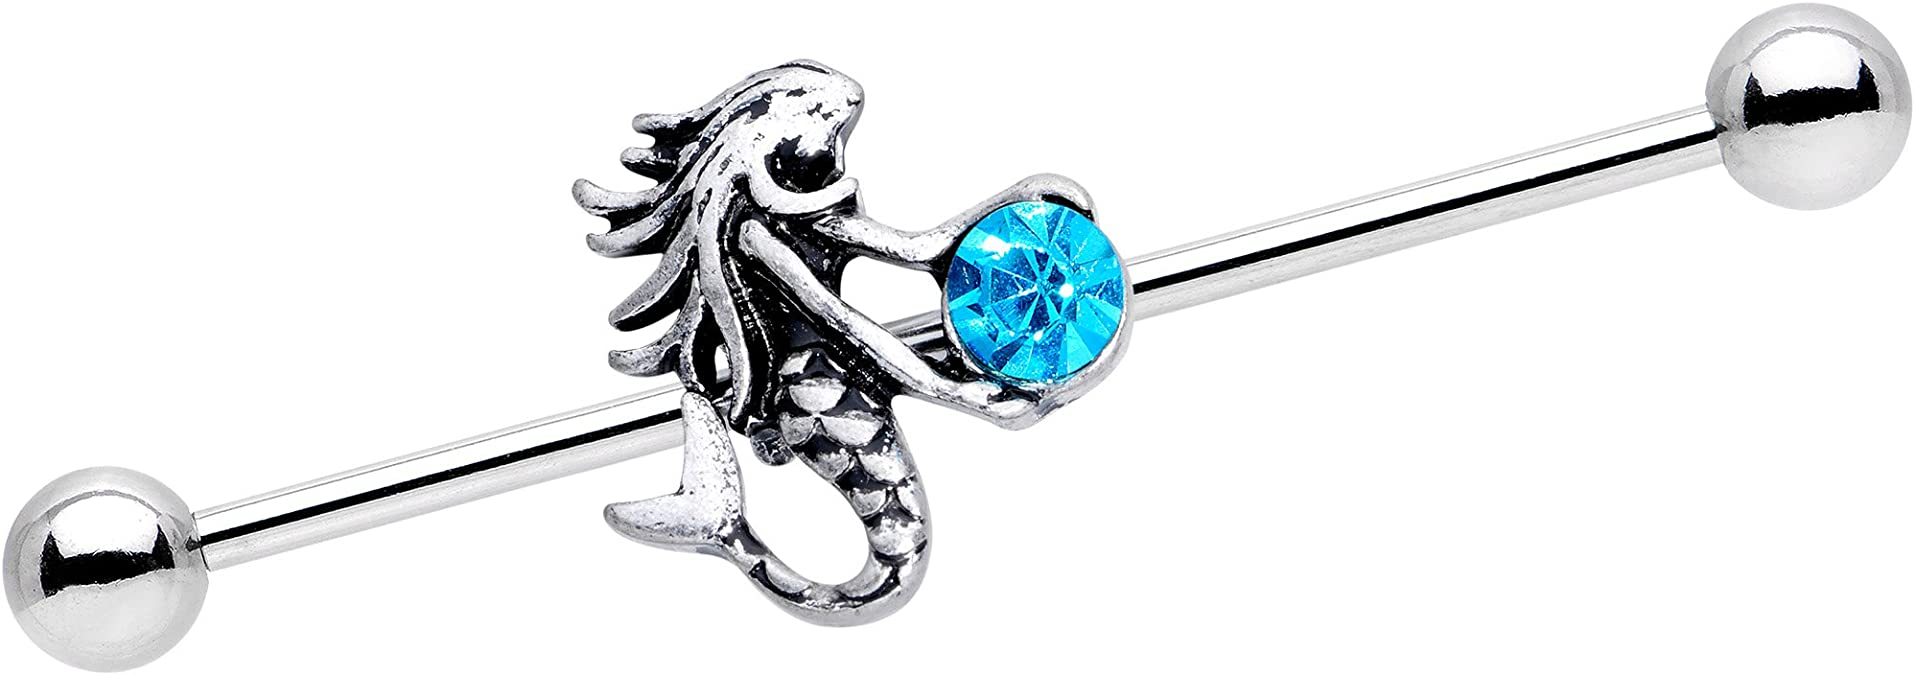 Body Candy Stainless Steel Brilliant Blue Accent Windmill Flower Industrial Barbell 14 Gauge 38mm